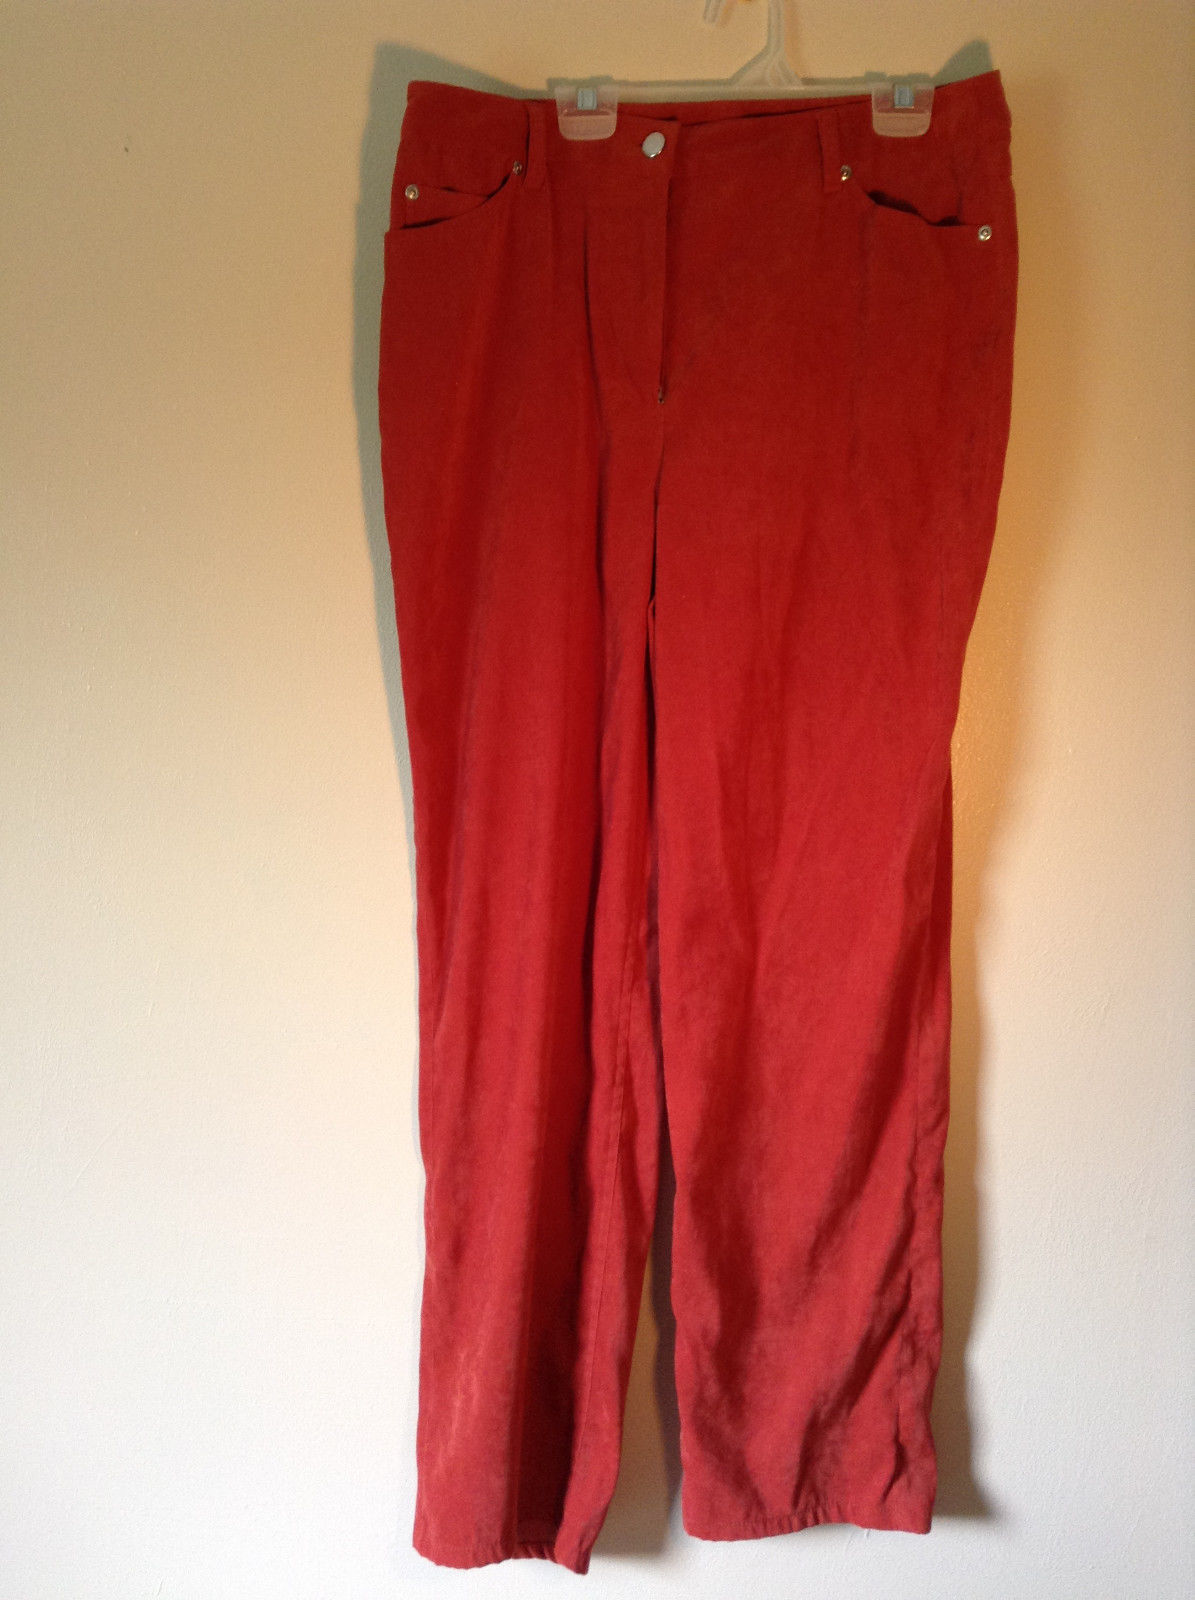 Chadwicks Red Long Pants Four Pockets Zipper and Snap Closure Size 12